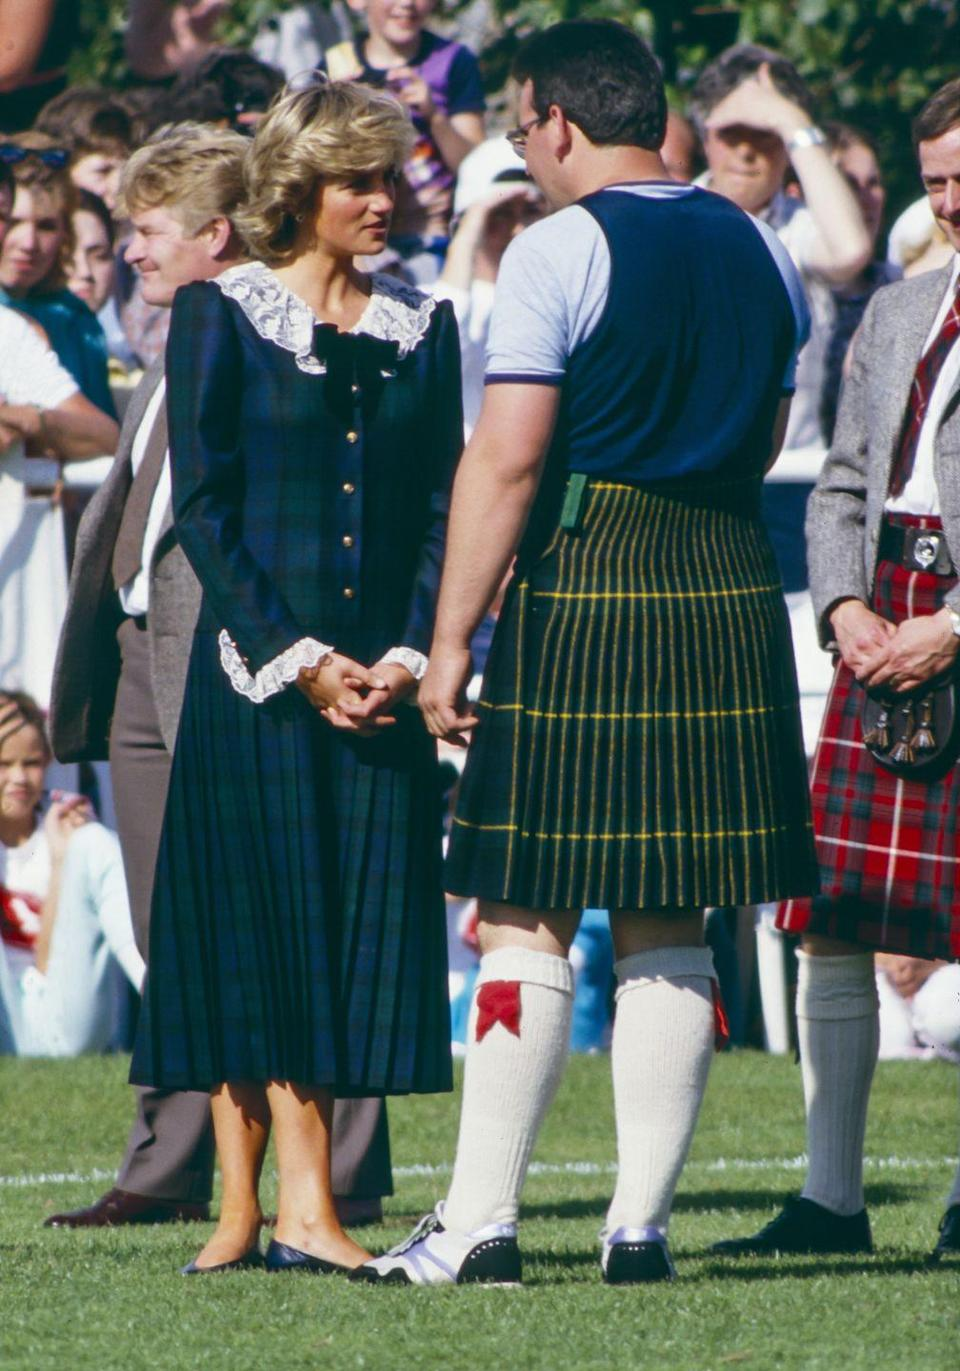 <p>The Princess attends The Bute Highland Games on August 22, 1987, wearing a green tartan dress with a white lace pilgrim collar and lace cuffs.</p>